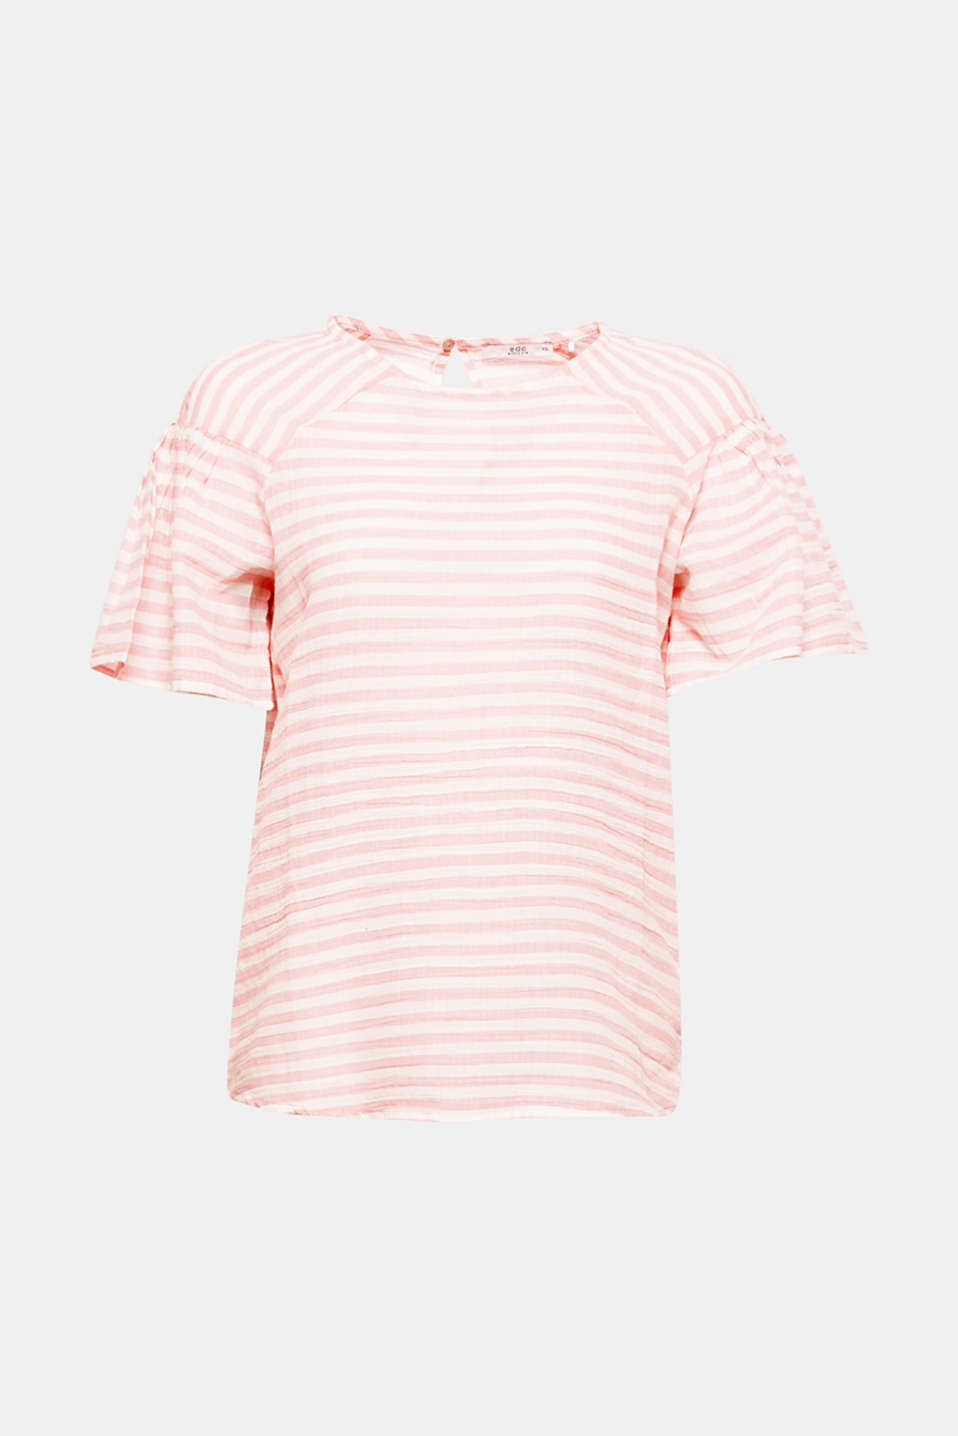 Lightweight material, light and airy look: With a fresh striped pattern and flounce sleeves, this delicate, slightly sheer blouse is perfect for warmer weather!